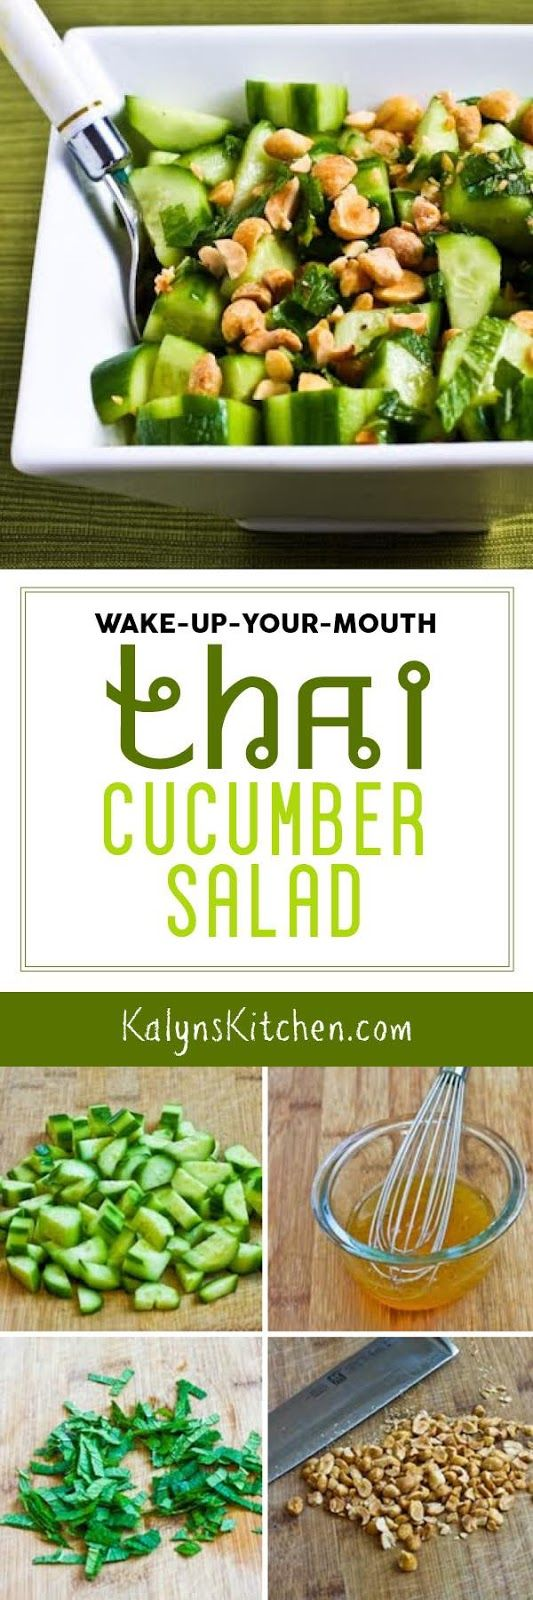 Wake-Up-Your-Mouth Thai Cucumber Salad is a fabulous side dish for any Asian meal and with approved sweeteners the salad is low-carb, Keto, low-glycemic, gluten-free, and South Beach Diet friendly. This is a great salad any time of year! [found on KalynsKitchen.com]